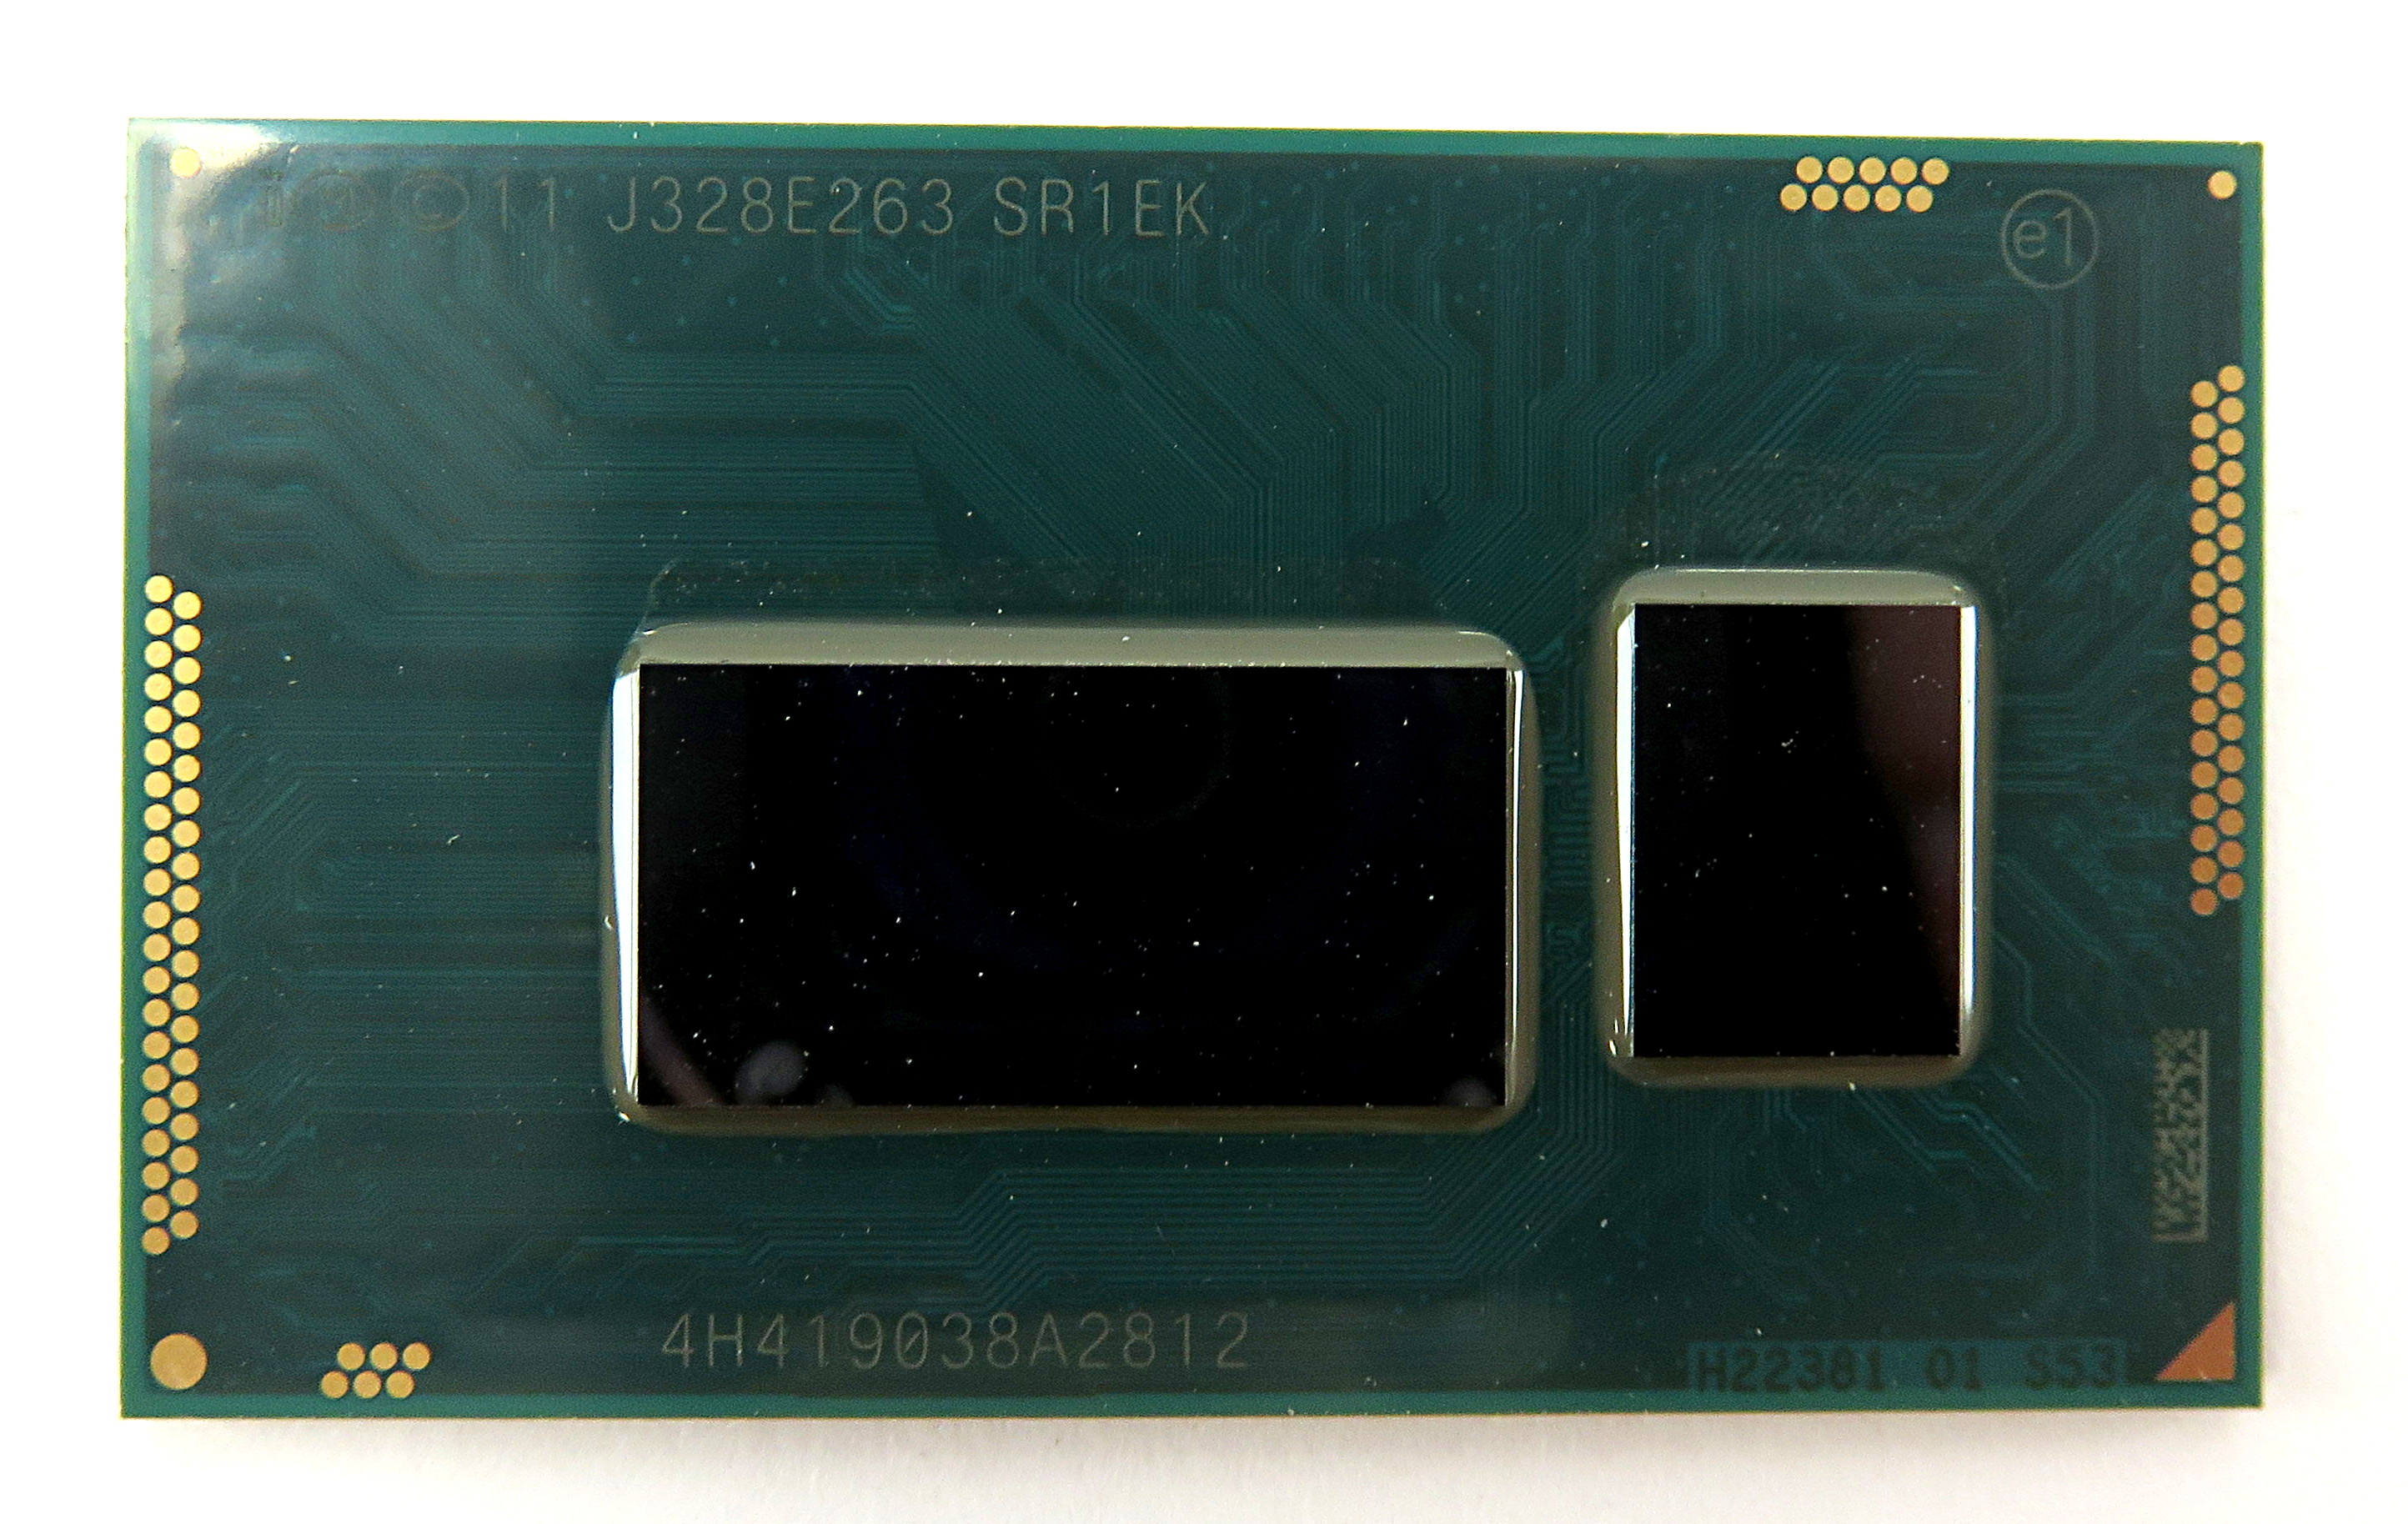 Intel i3-4005U SR1EK Dual-Core 4-Thread 1.7GHz 3MB BGA1168 Mobile Haswell CPU